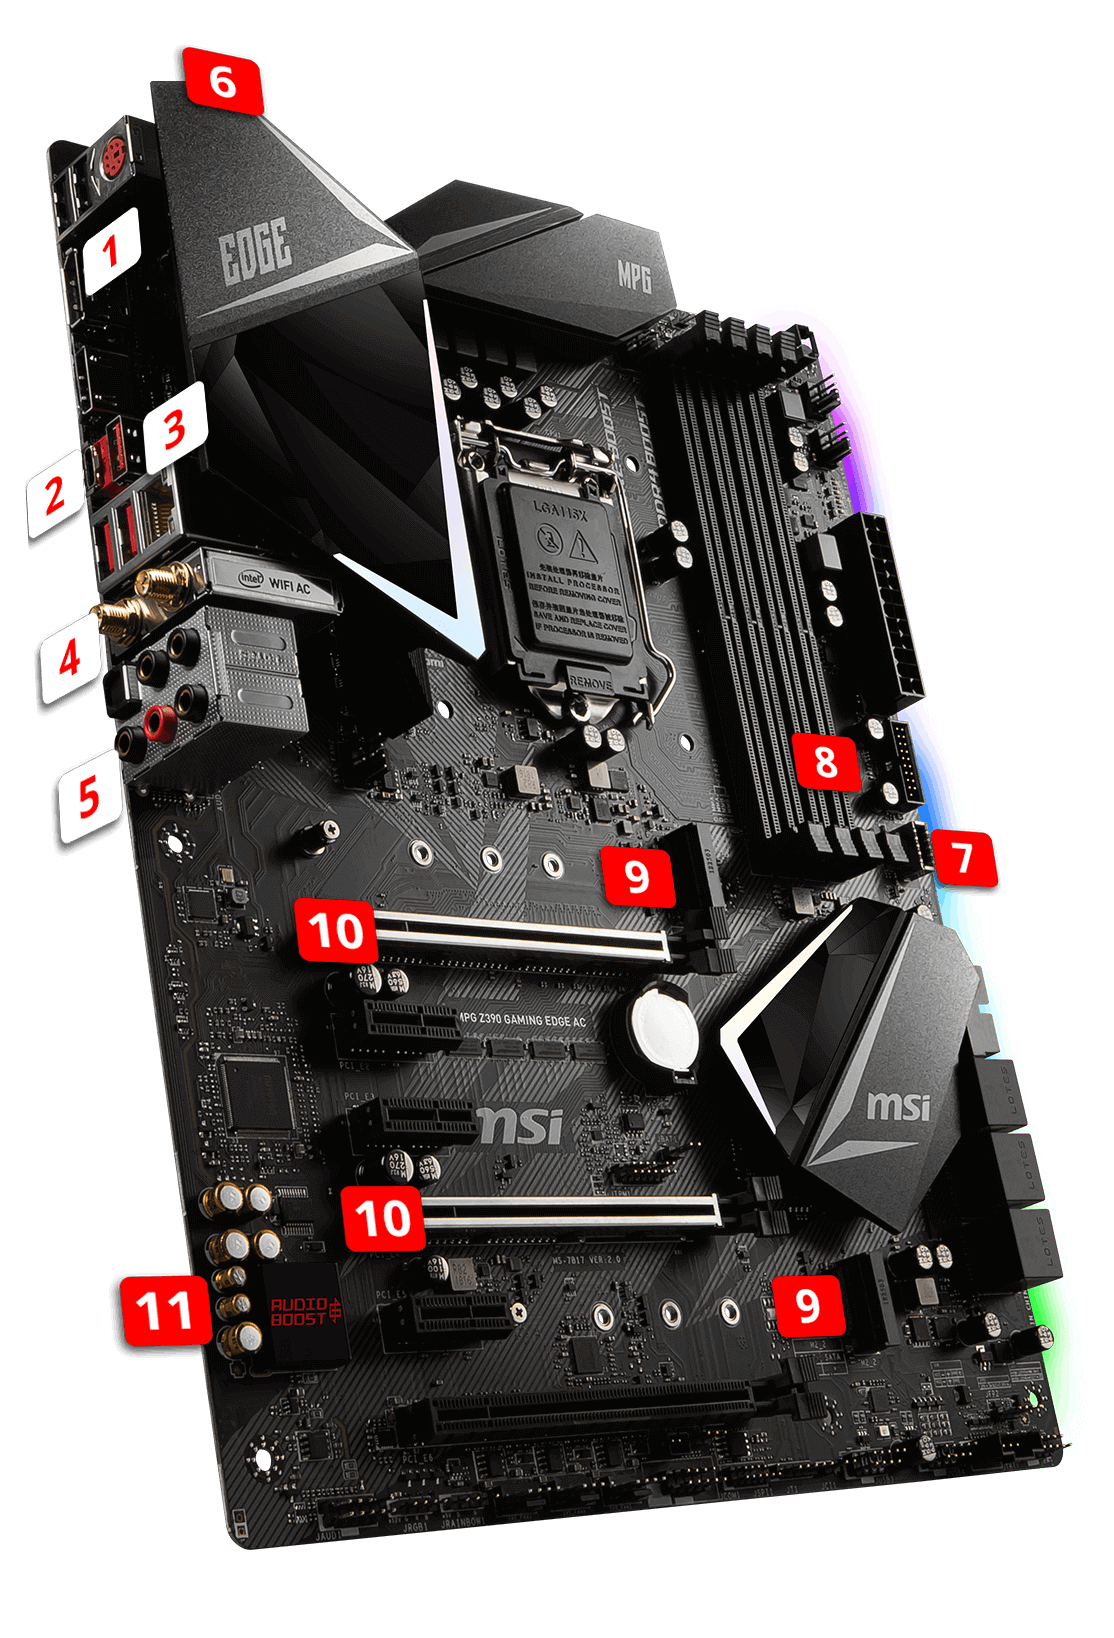 MSI MPG Z390 GAMING EDGE AC overview